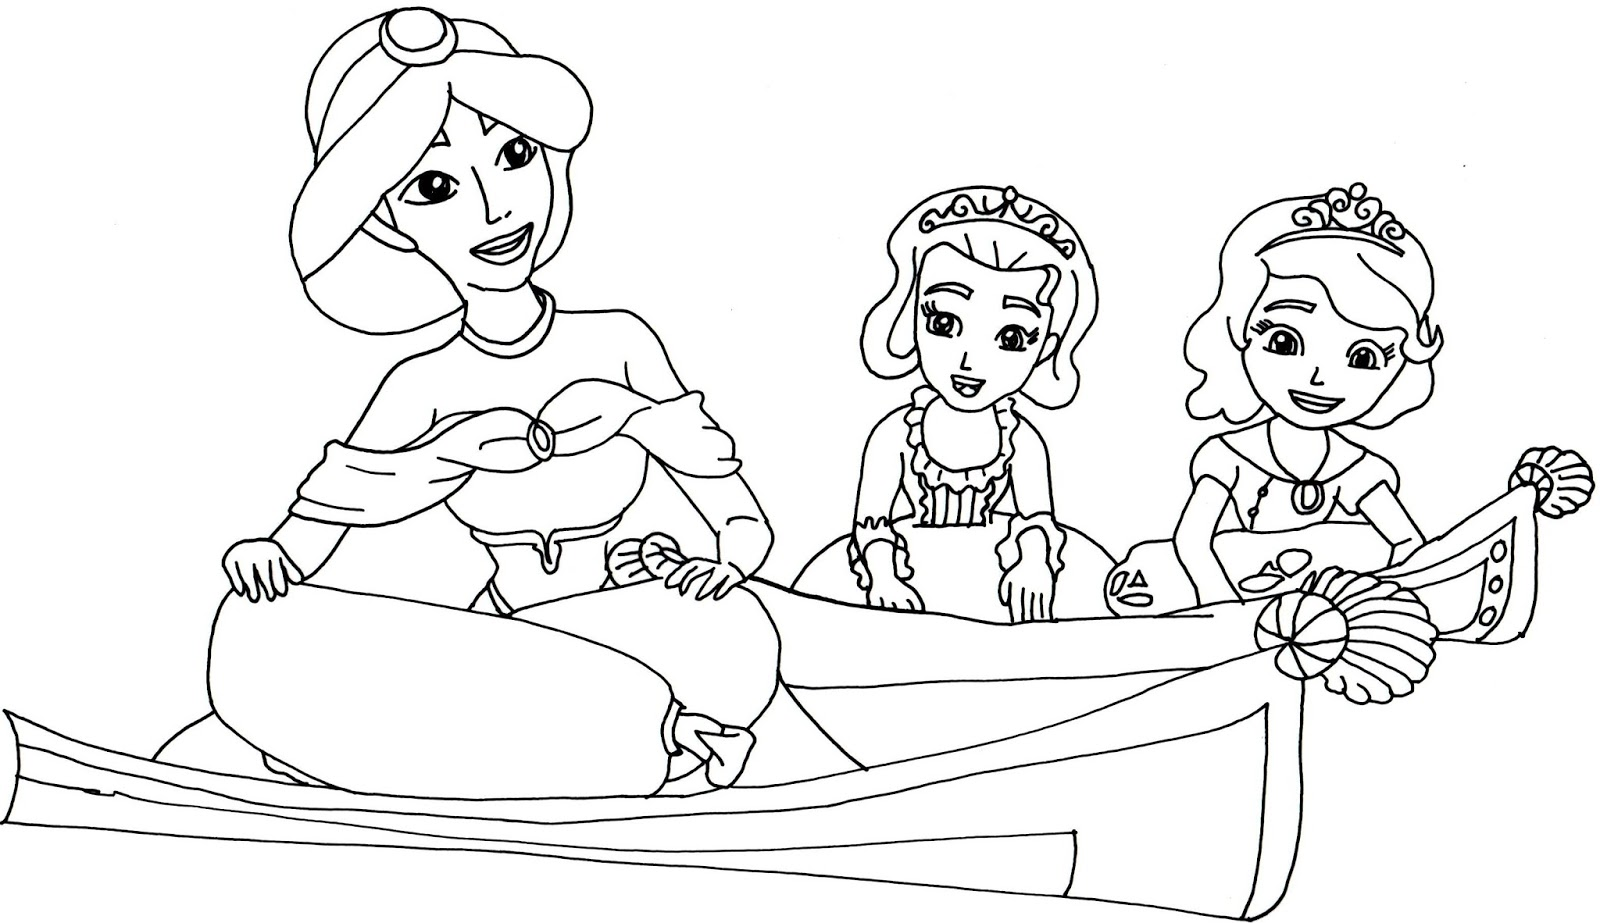 Princess amber coloring pages online